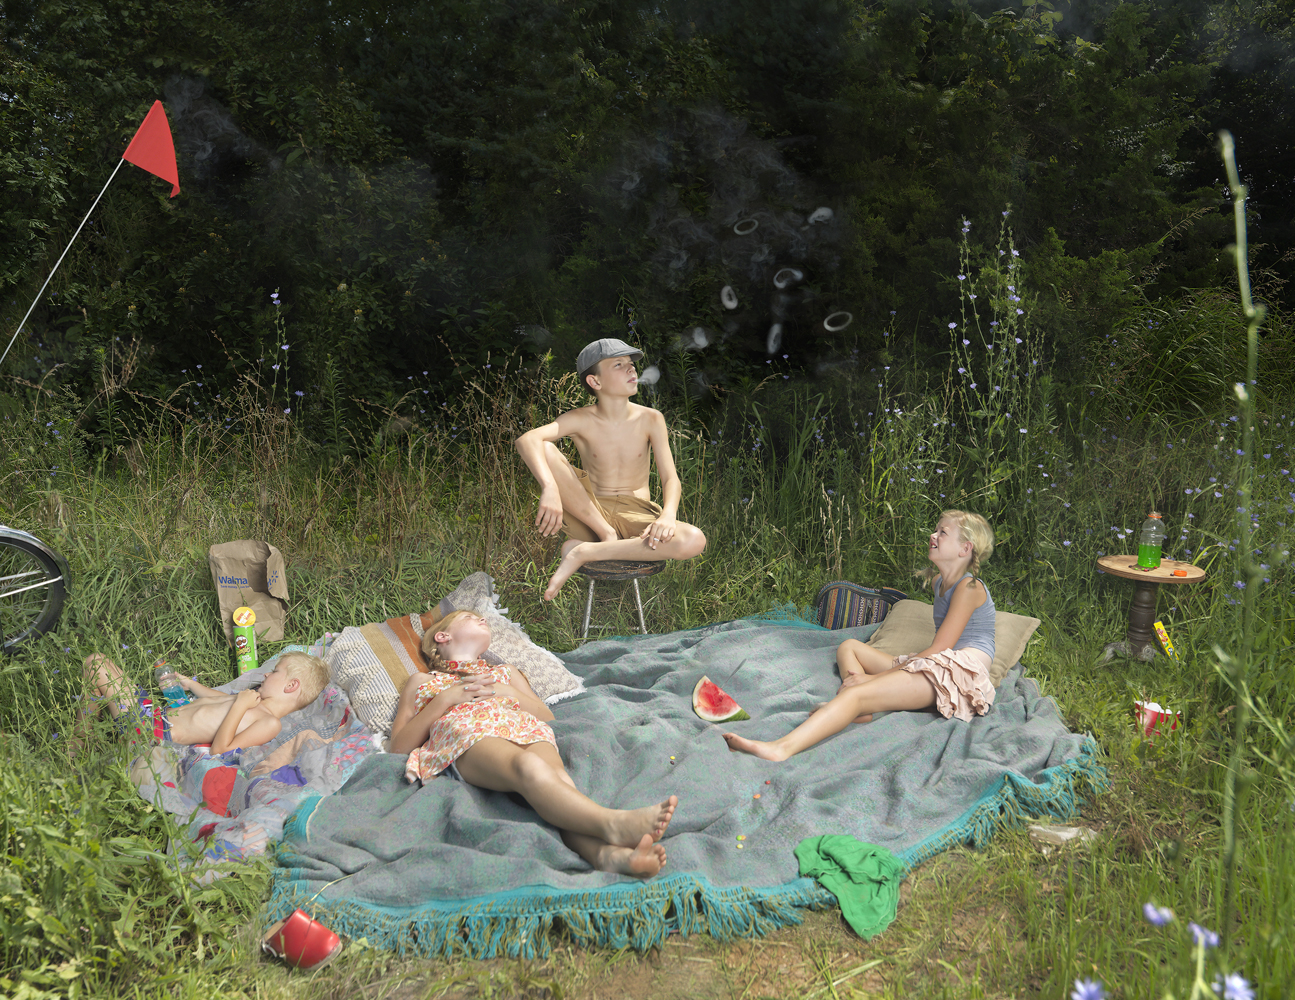 Julie Blackmon, Weeds, 2017, 22×30″, 32×44″, 40×56″, editions of 10, 7, 5, price on request